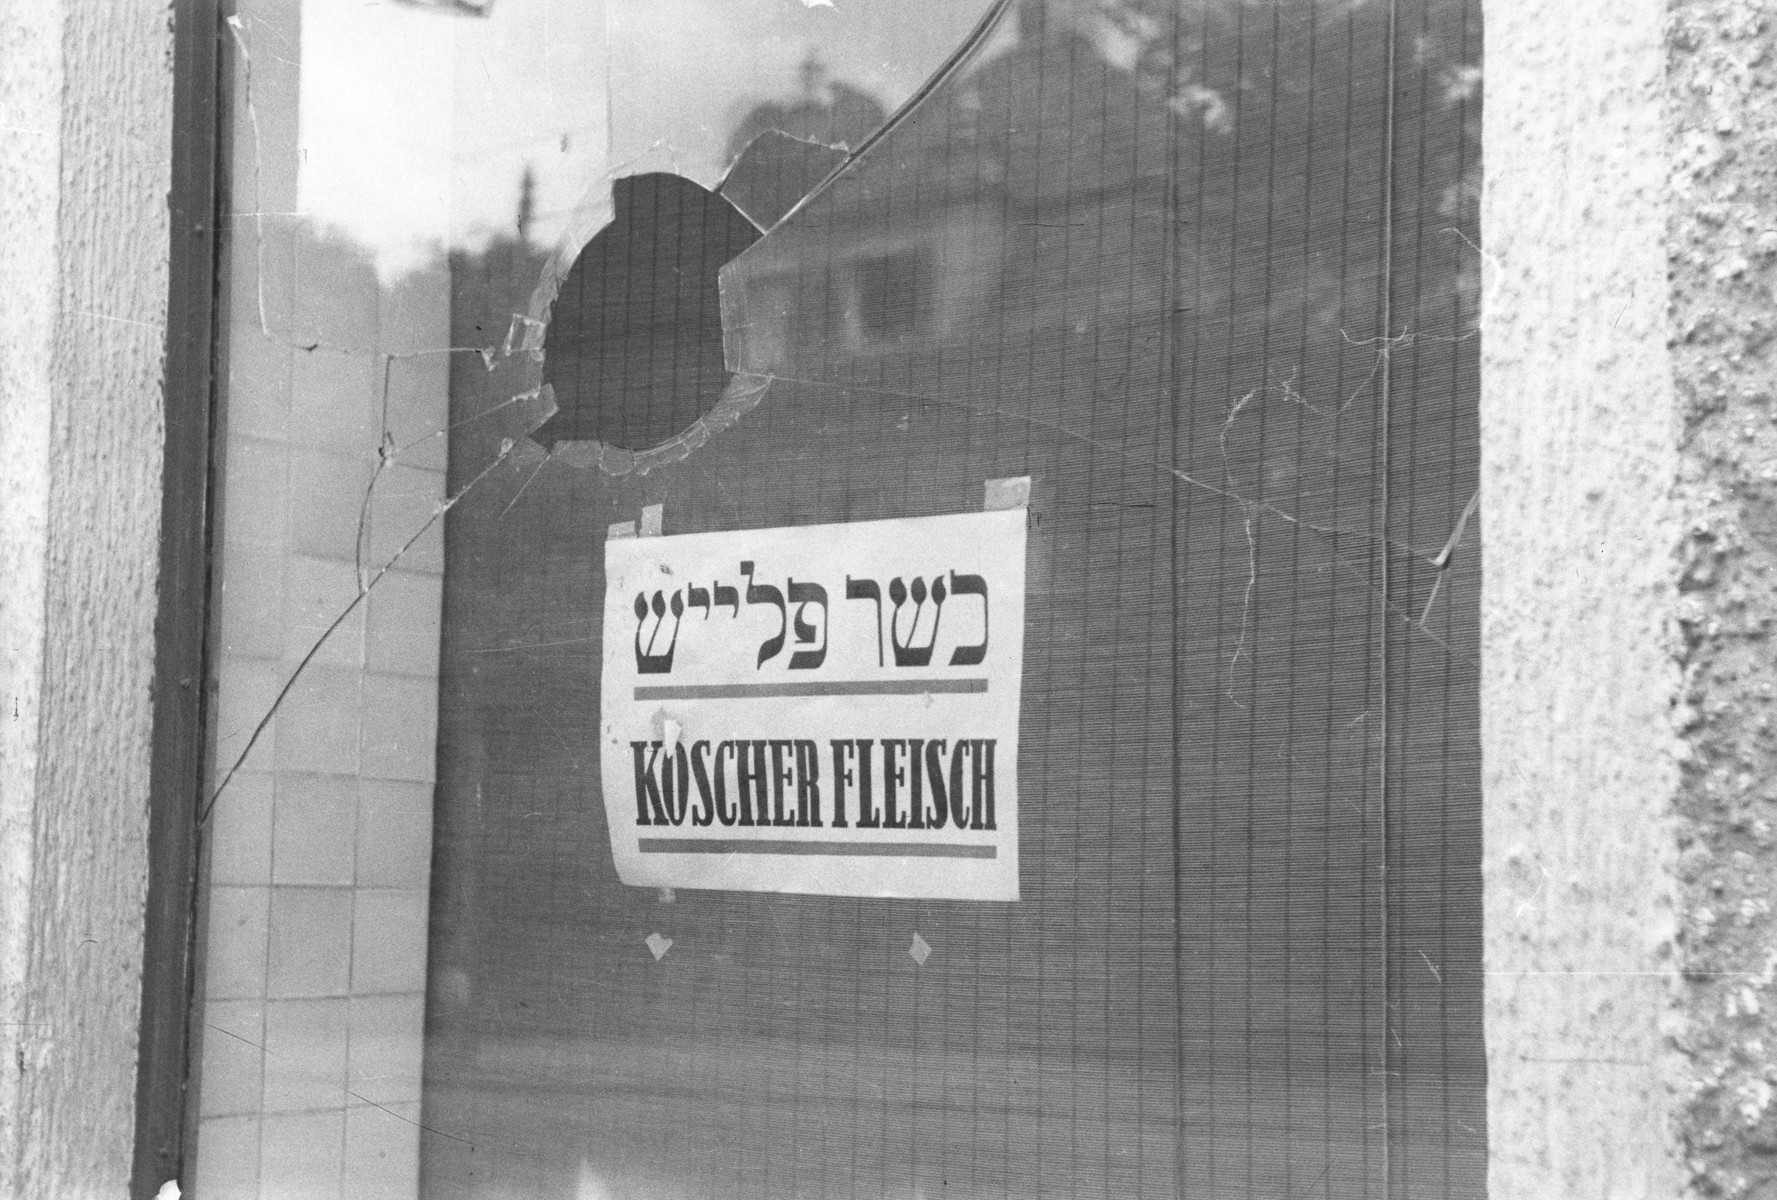 The vandalized display window of a kosher butcher shop located on the Ismaningerstrasse in Munich.